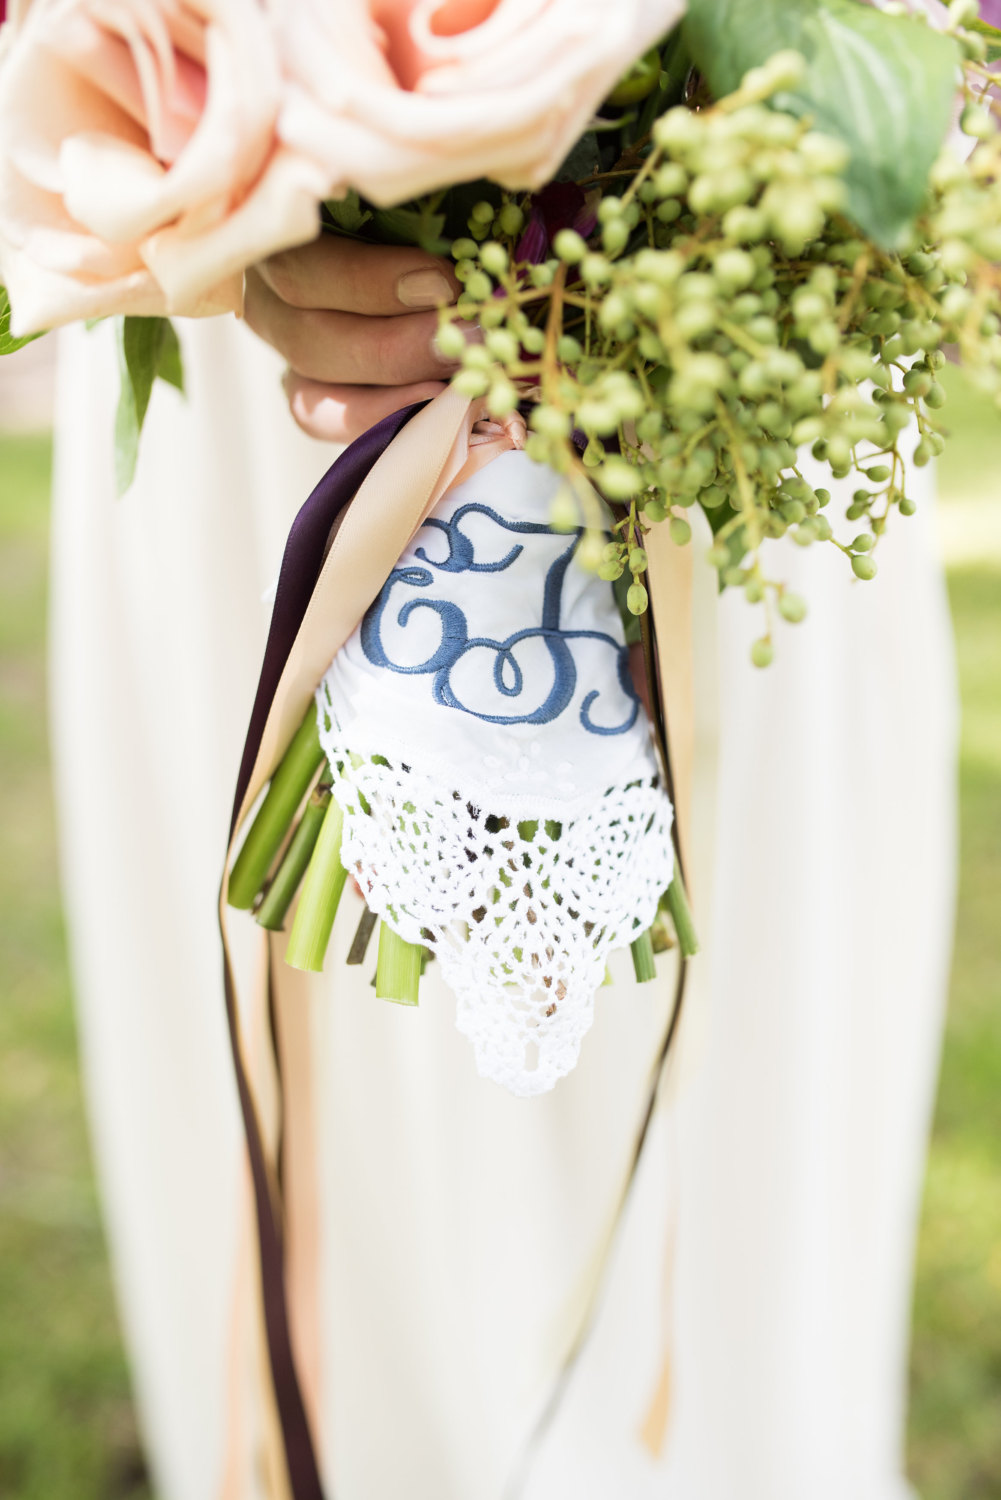 Where to Put Bridal Handkerchief During Wedding? - Ask Emmaline